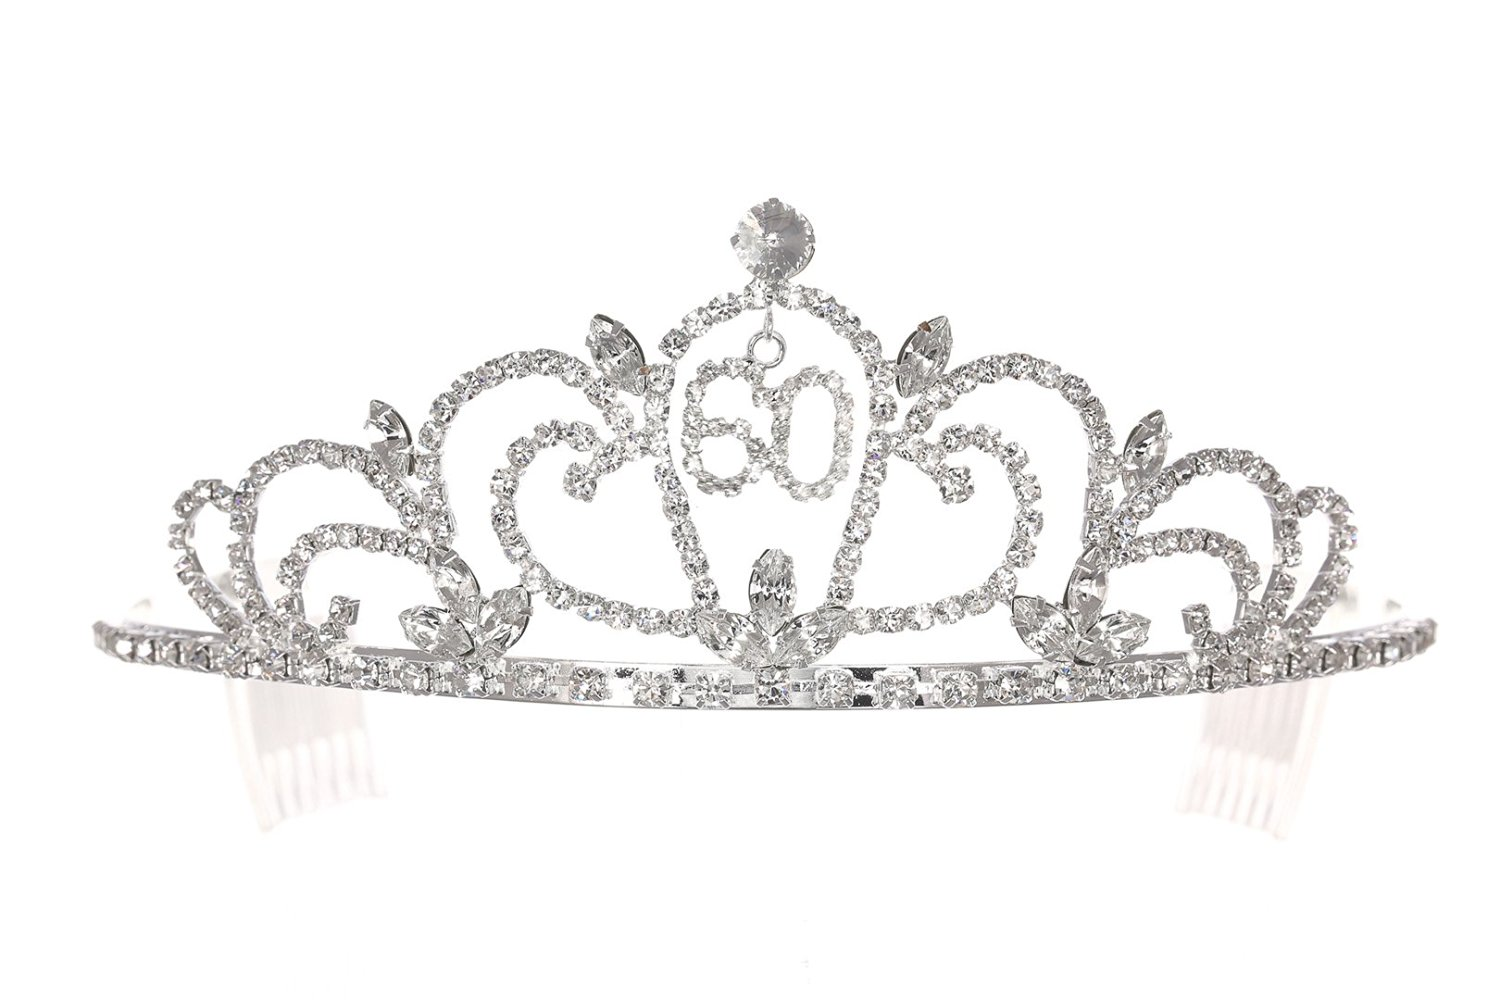 Birthday Party Rhinestone Crystal Tiara Crown - 60th Sixty Sixtieth T1170